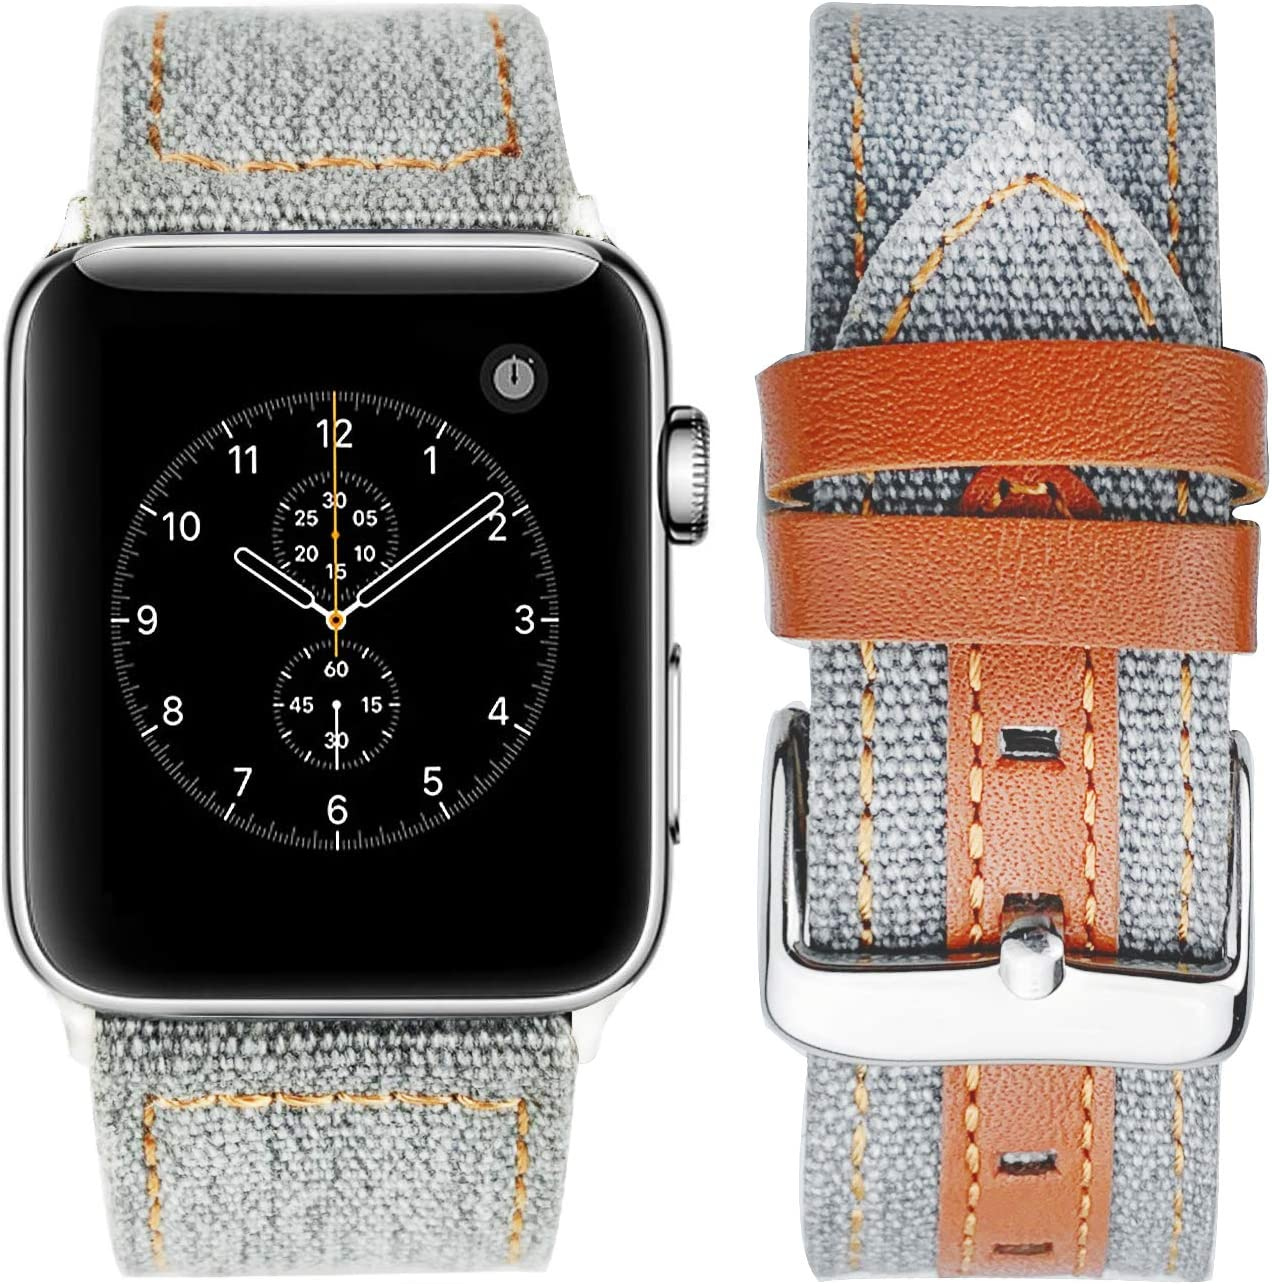 Compatible with Apple Watch 42mm/44mm 38mm/40mm Series 5 Series 4 Series 3 Straps - Jeans apple watch band - Classic Canvas Fabric Genuine Leather Wristbands (gray, 42/44mm)